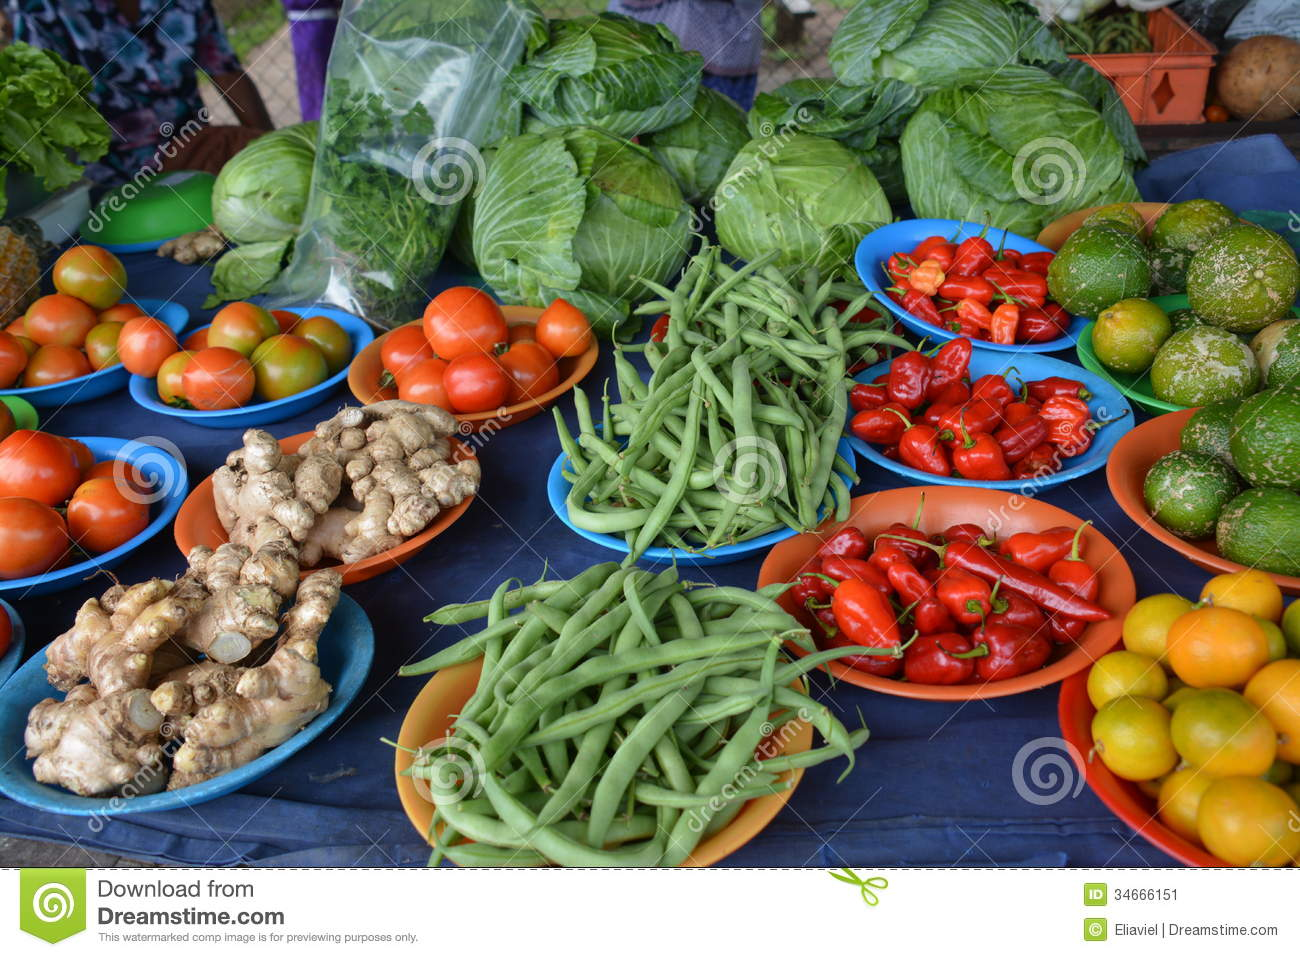 vegetables stall on a market day in Taveuni Island , Fiji.